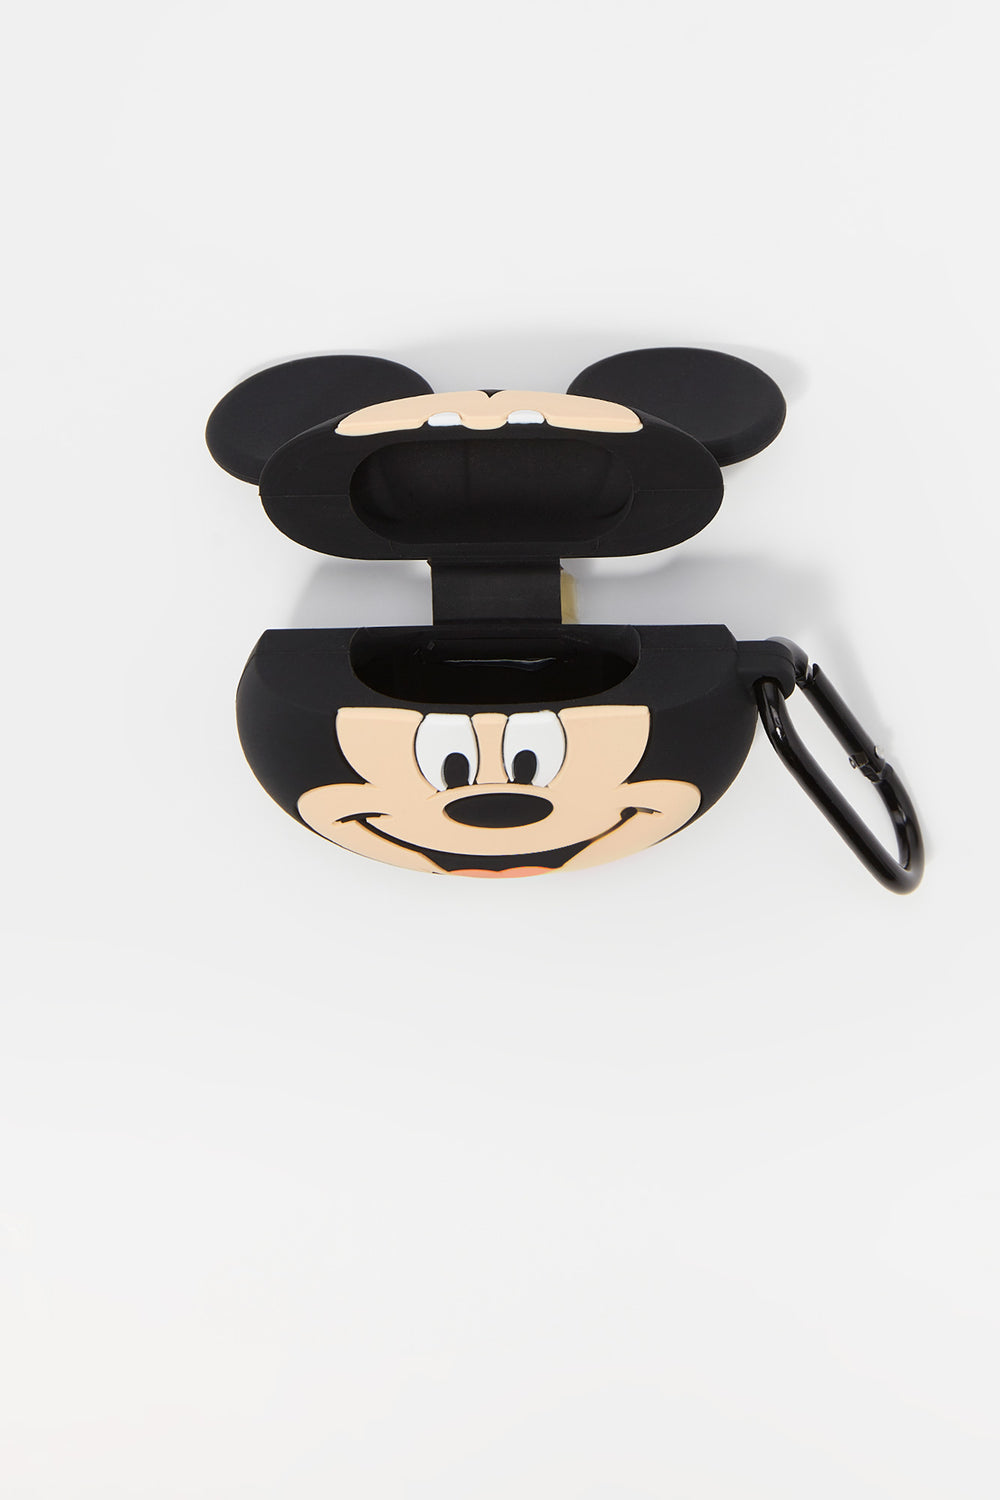 3D Character Airpod Case Black